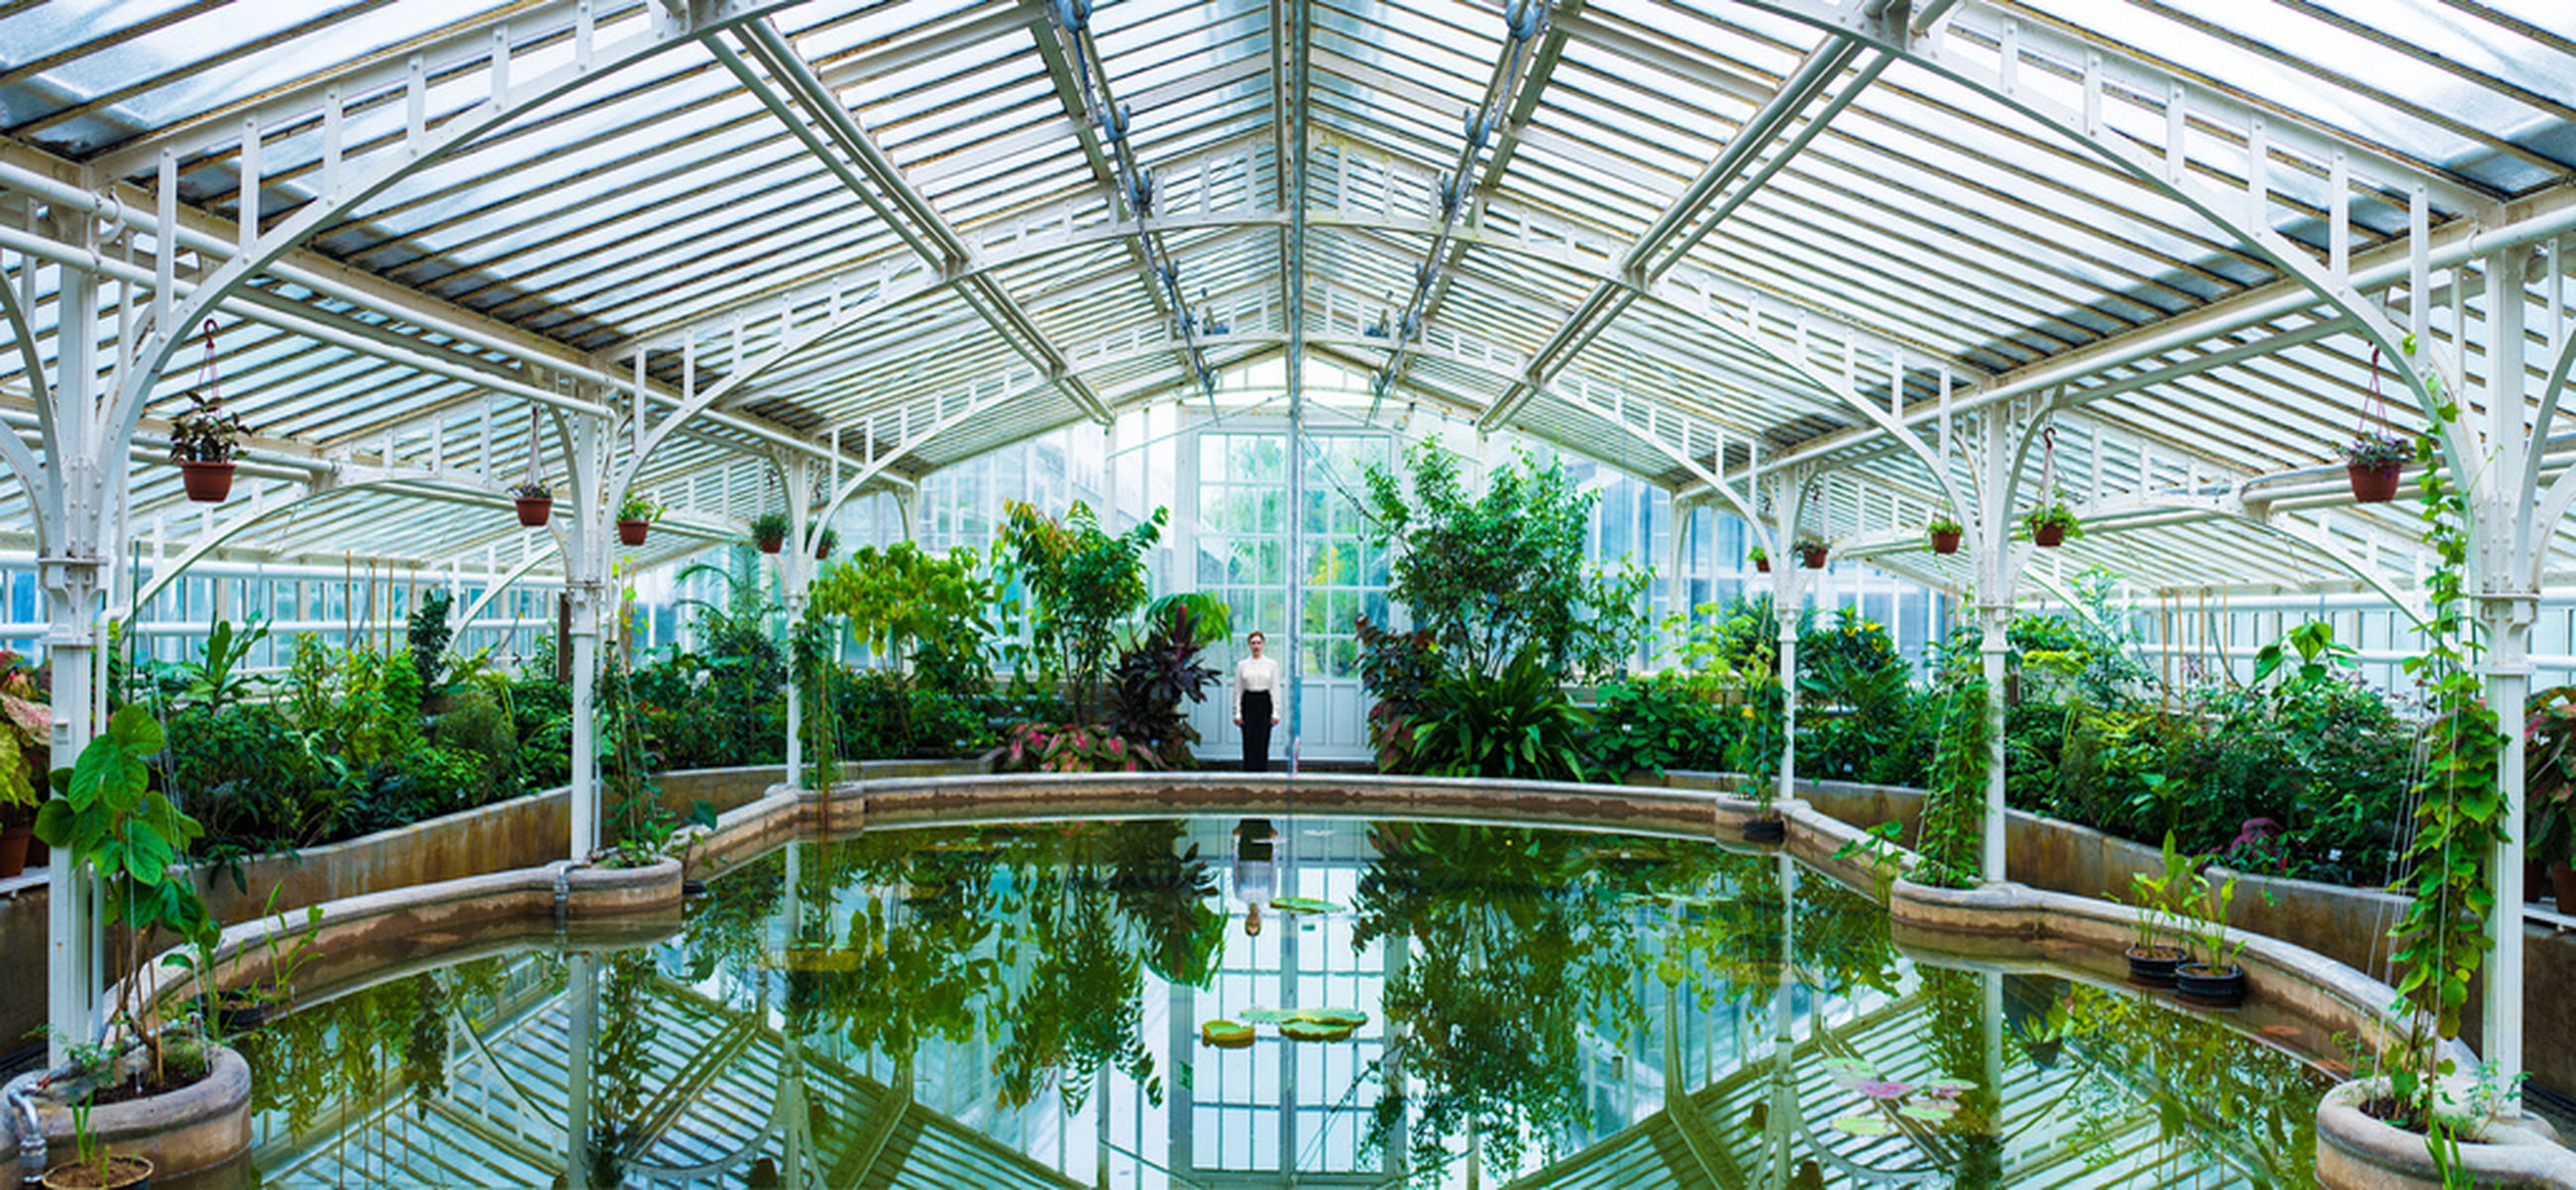 indoors, built structure, ceiling, architecture, railing, water, reflection, tree, plant, day, glass - material, greenhouse, no people, growth, potted plant, nature, arch, empty, window, pattern